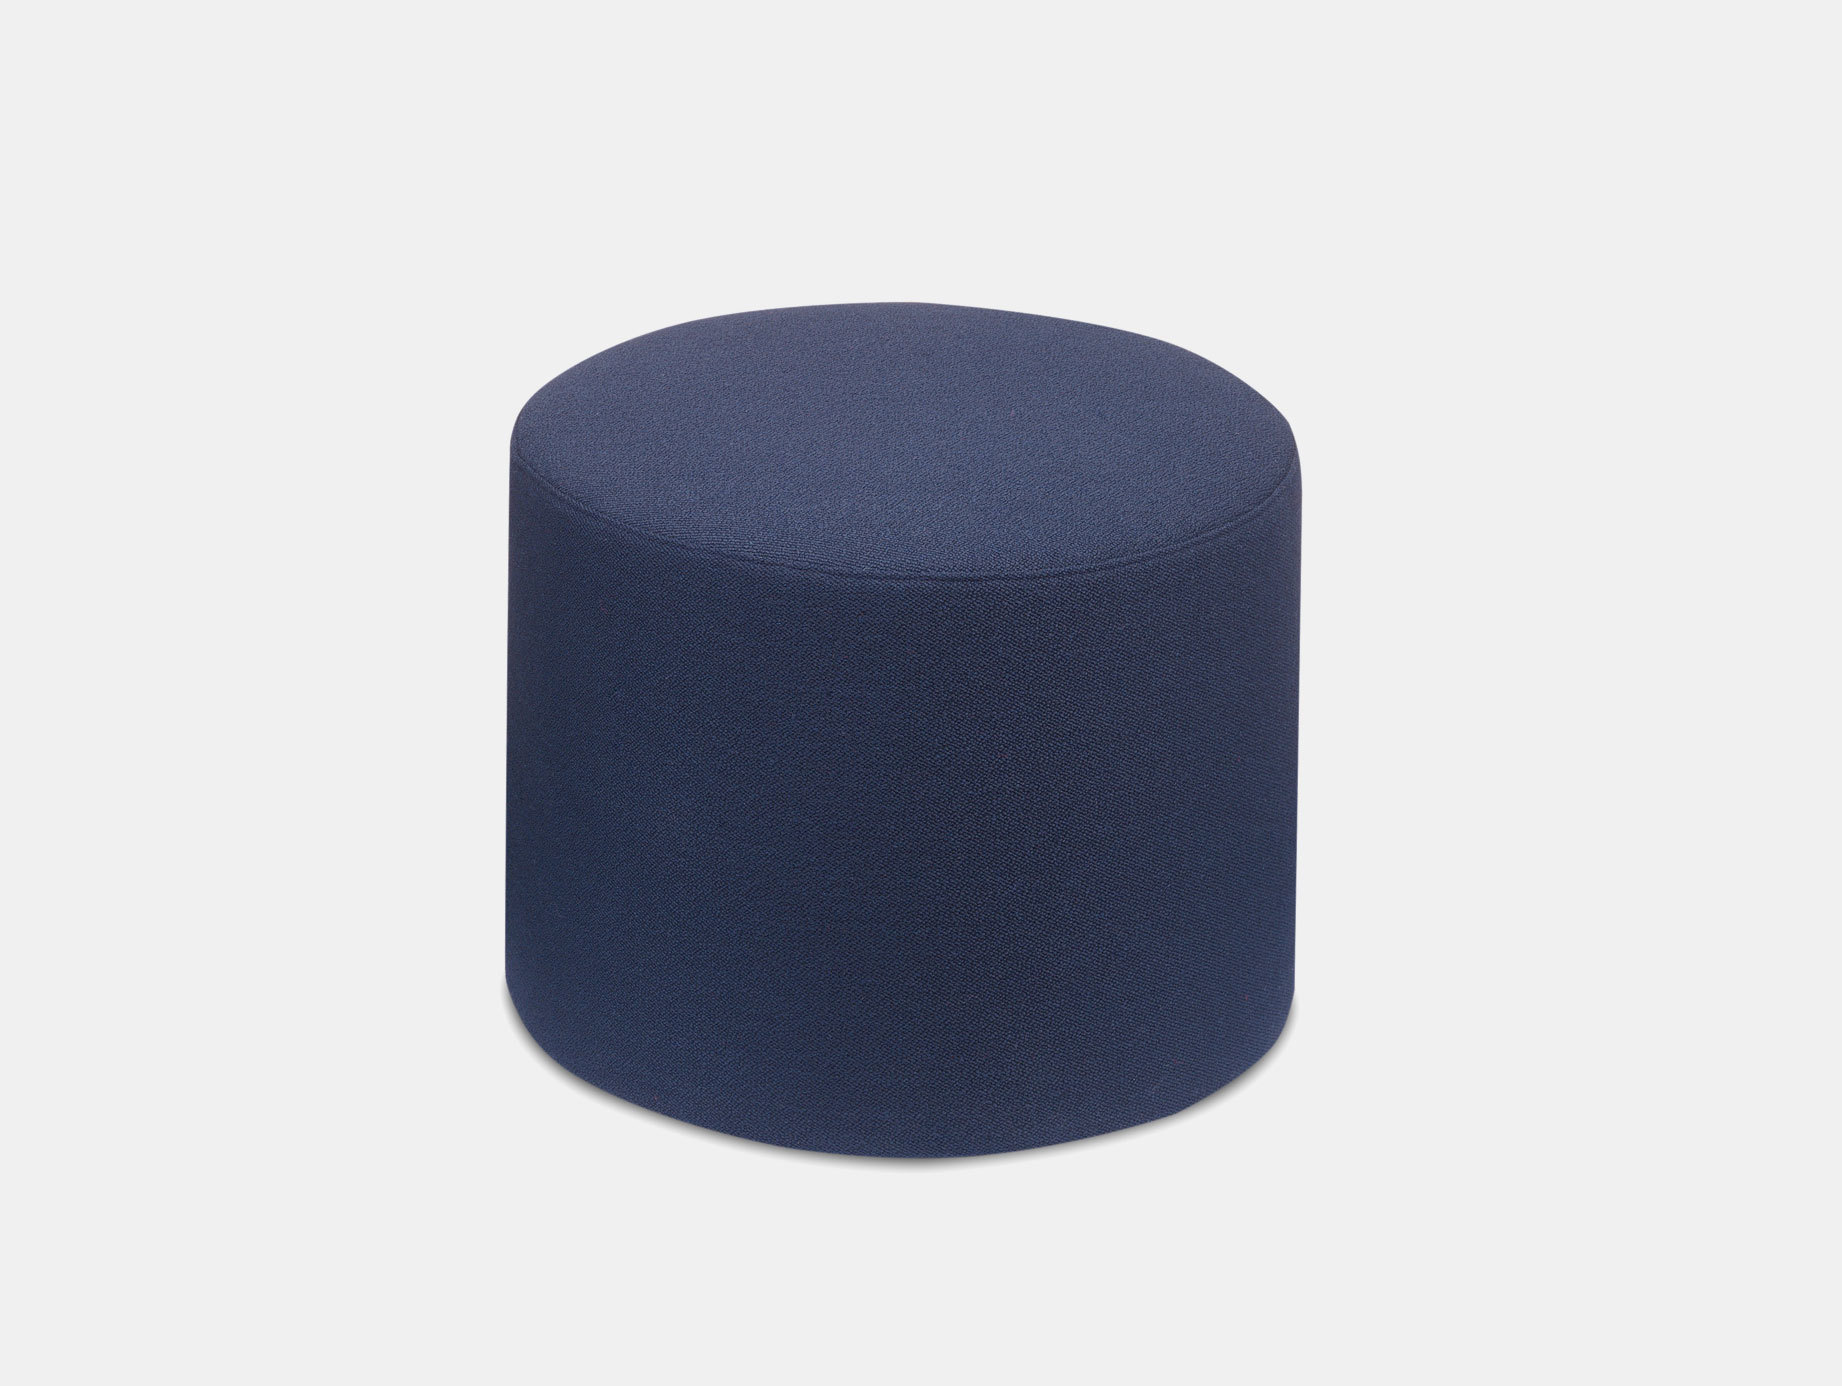 E15 Kerman Pouf Blue Fabric